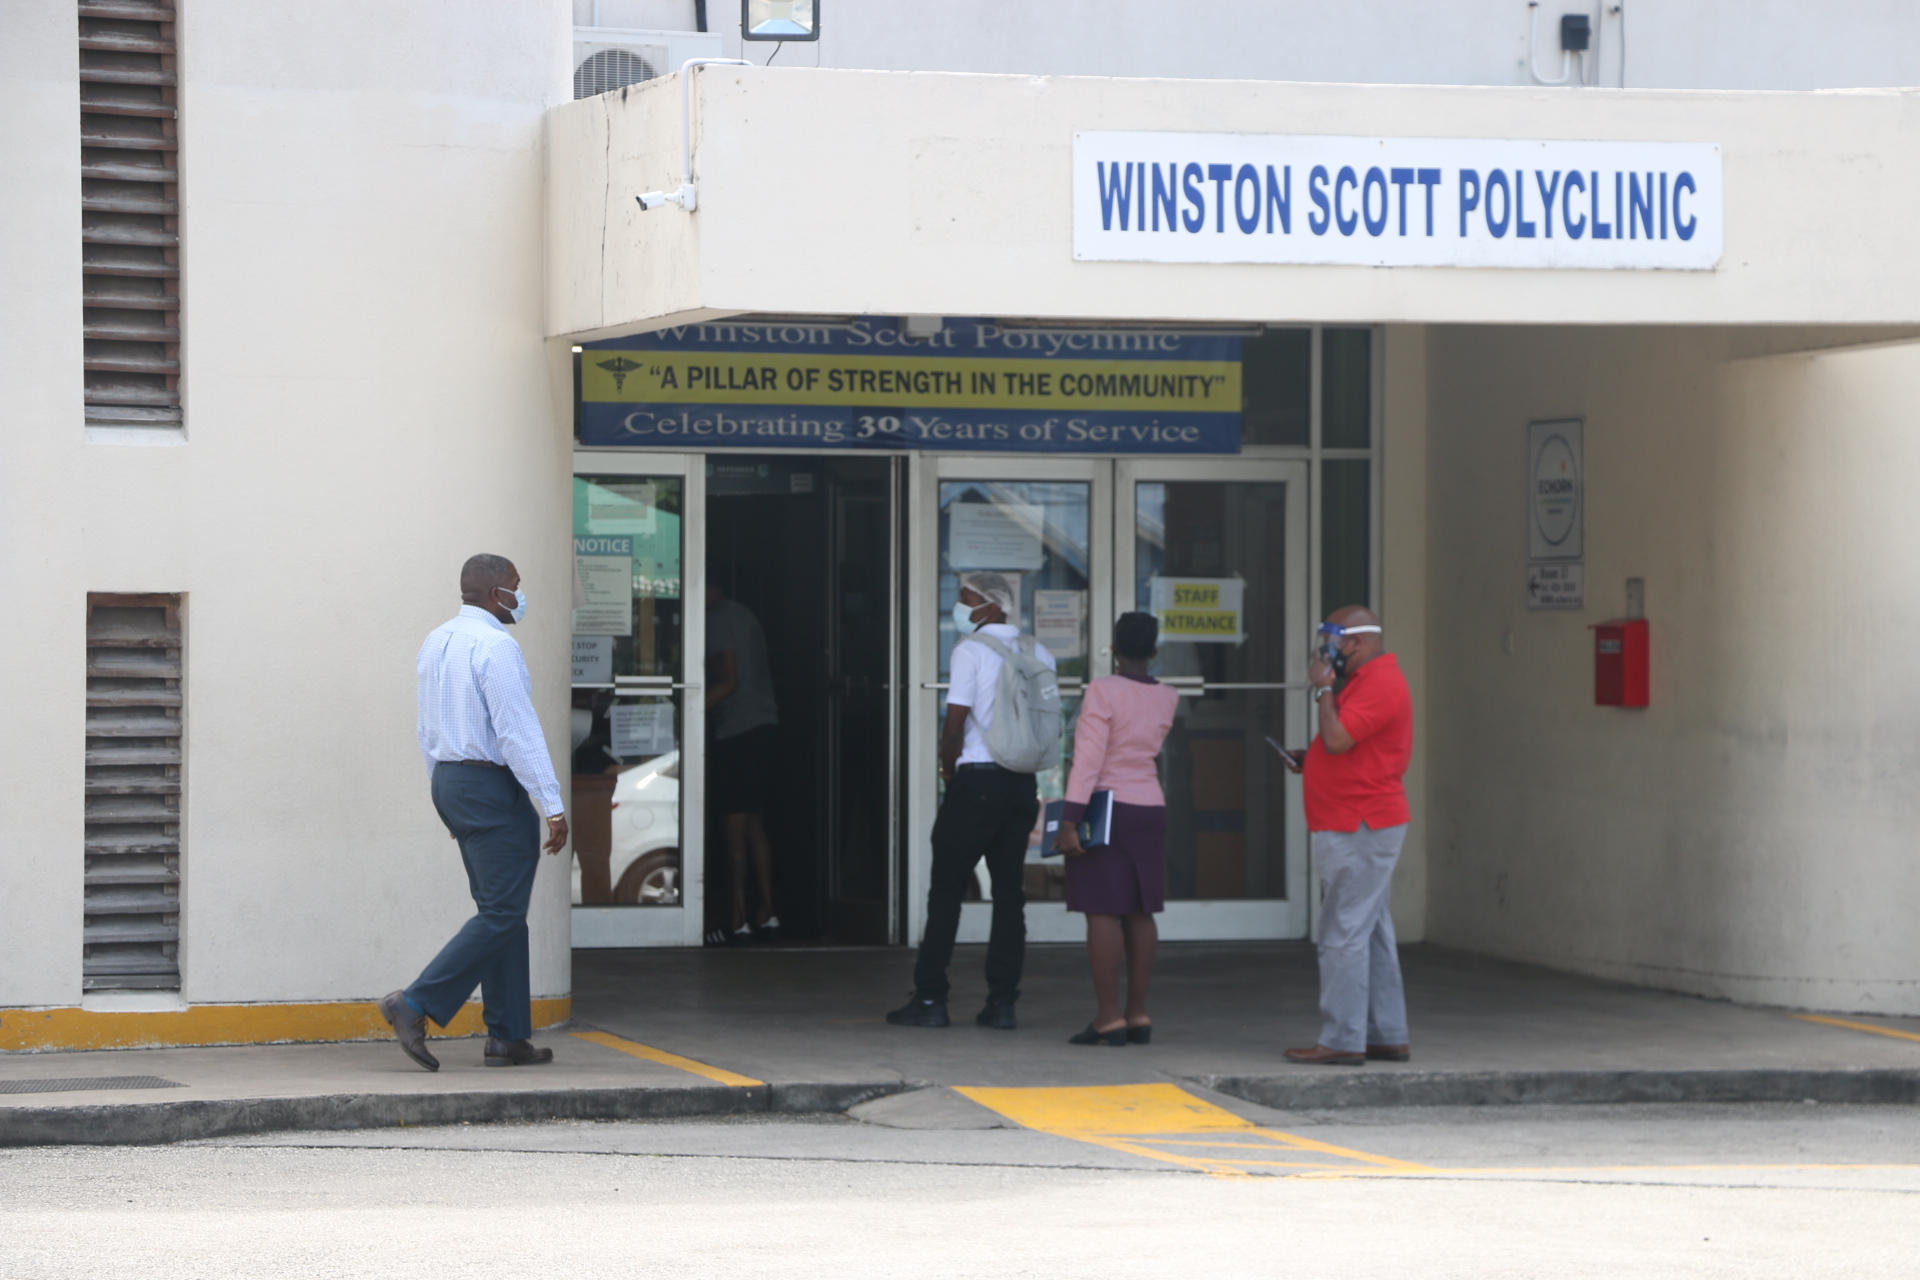 winston-scott-polyclinic-to-close-at-6-pm.-today